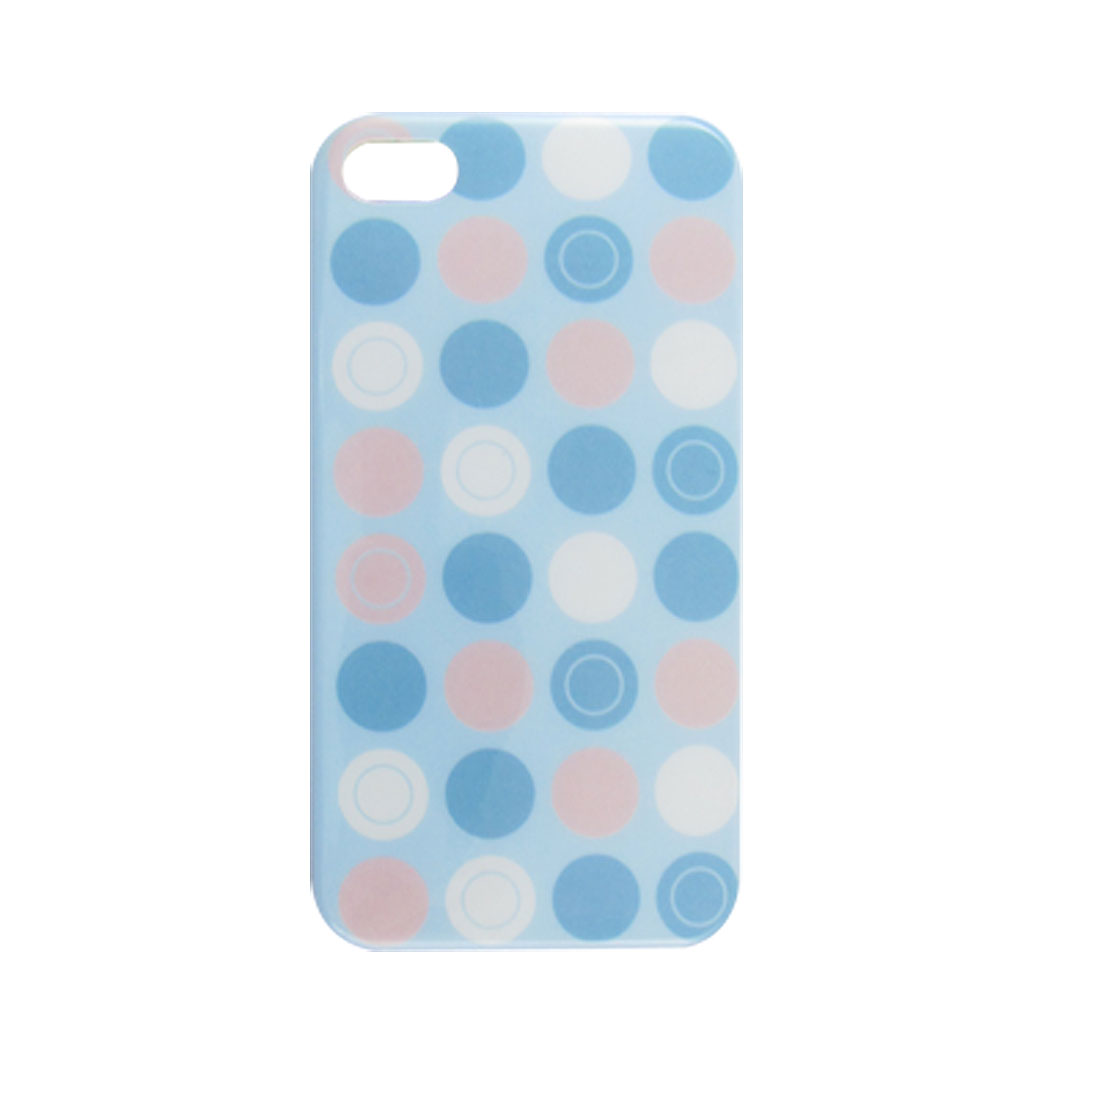 IMD Dotted Blue Hard Plastic Back Case for iPhone 4 4G 4S